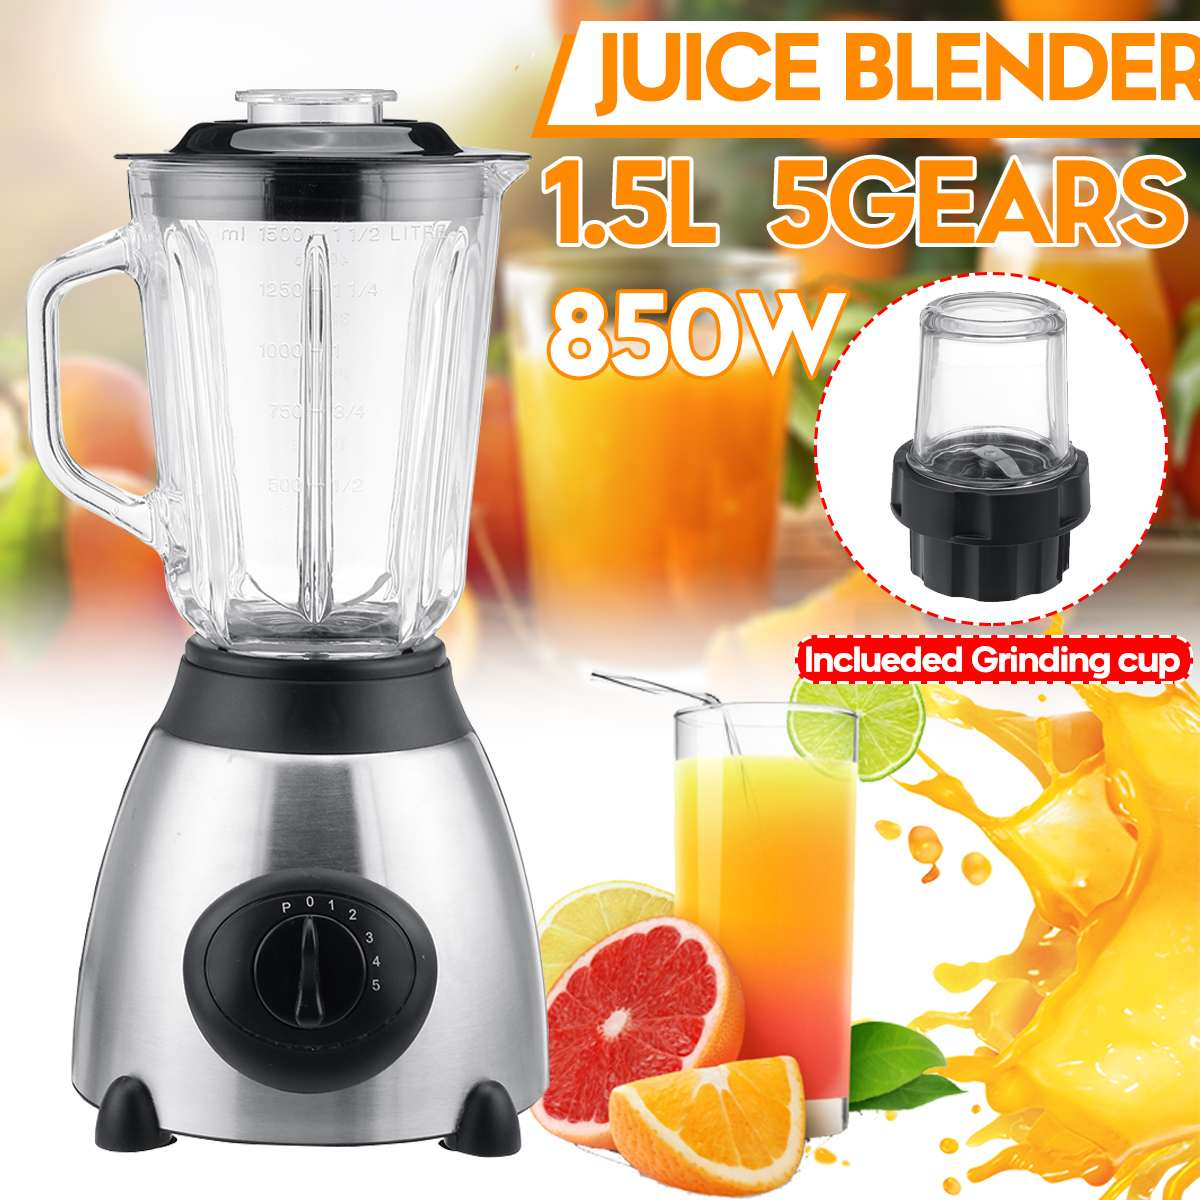 850W 1.5L 2 in 1 Fruit Vegetables blenders Cup BPA FREE Electric Juicer Ice Smoothie Mixer Machine Home Kitchen Food Processor